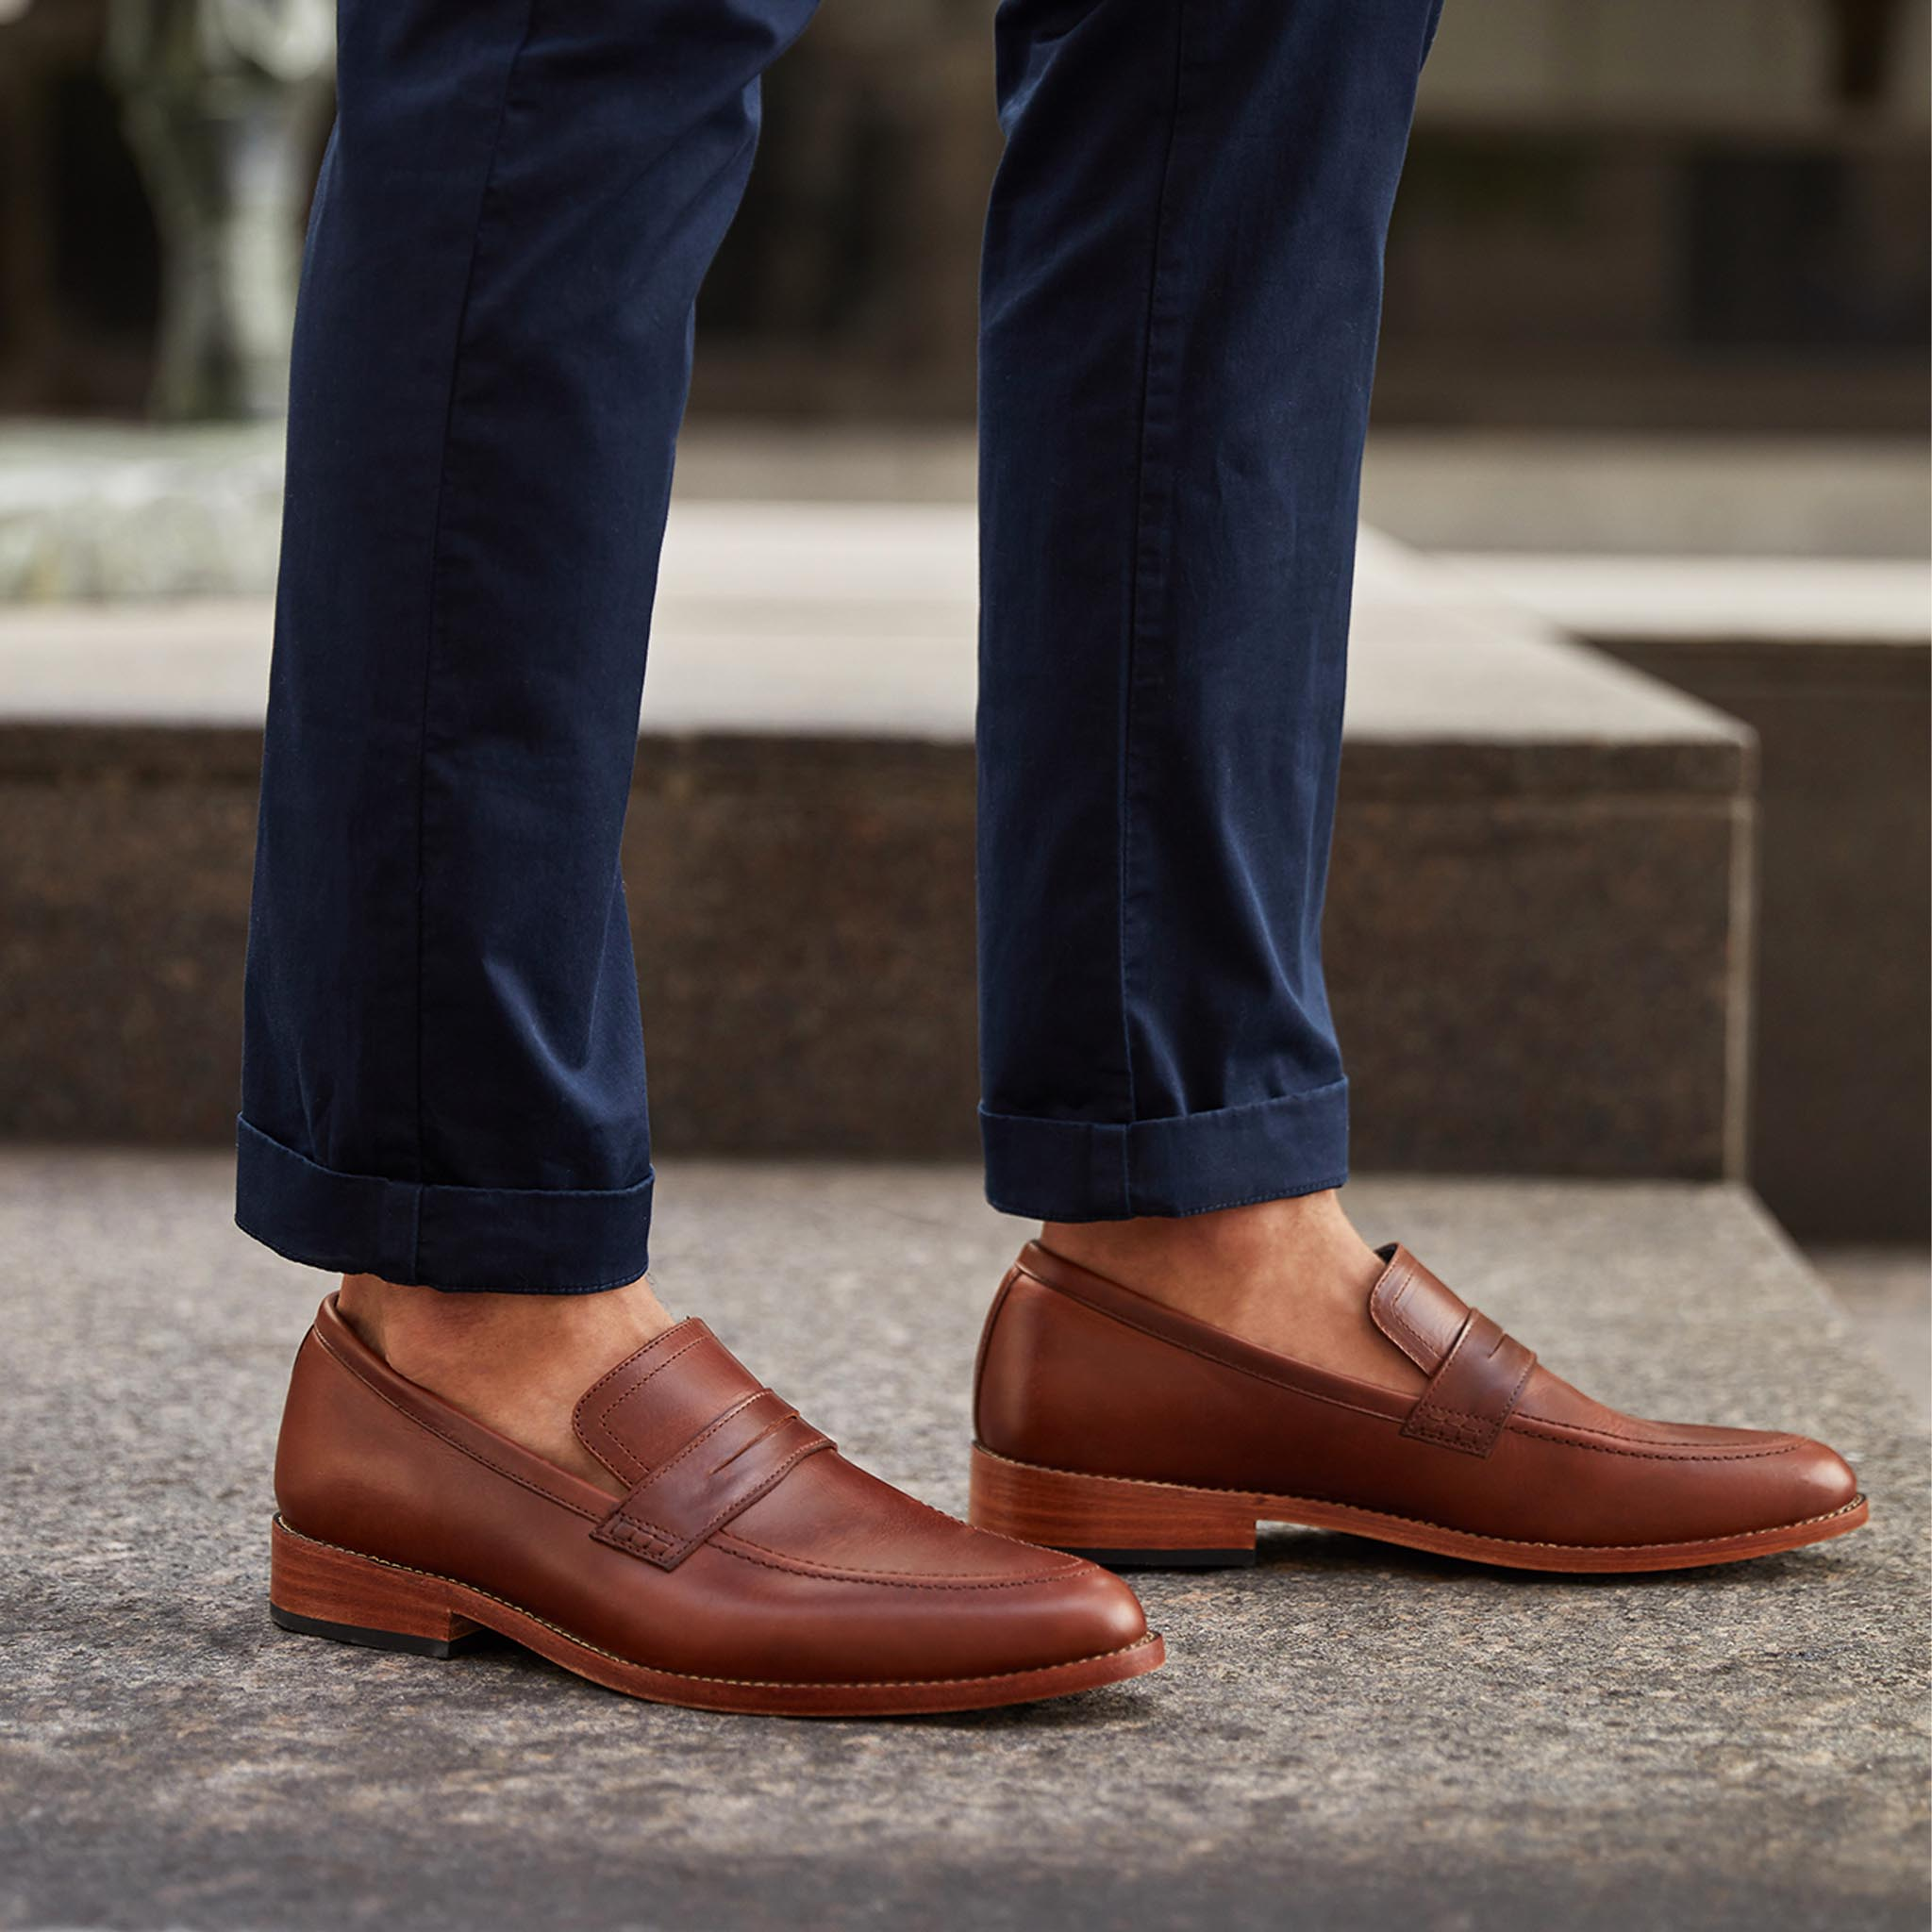 Nisolo - Chamberlain Penny Loafer Brandy